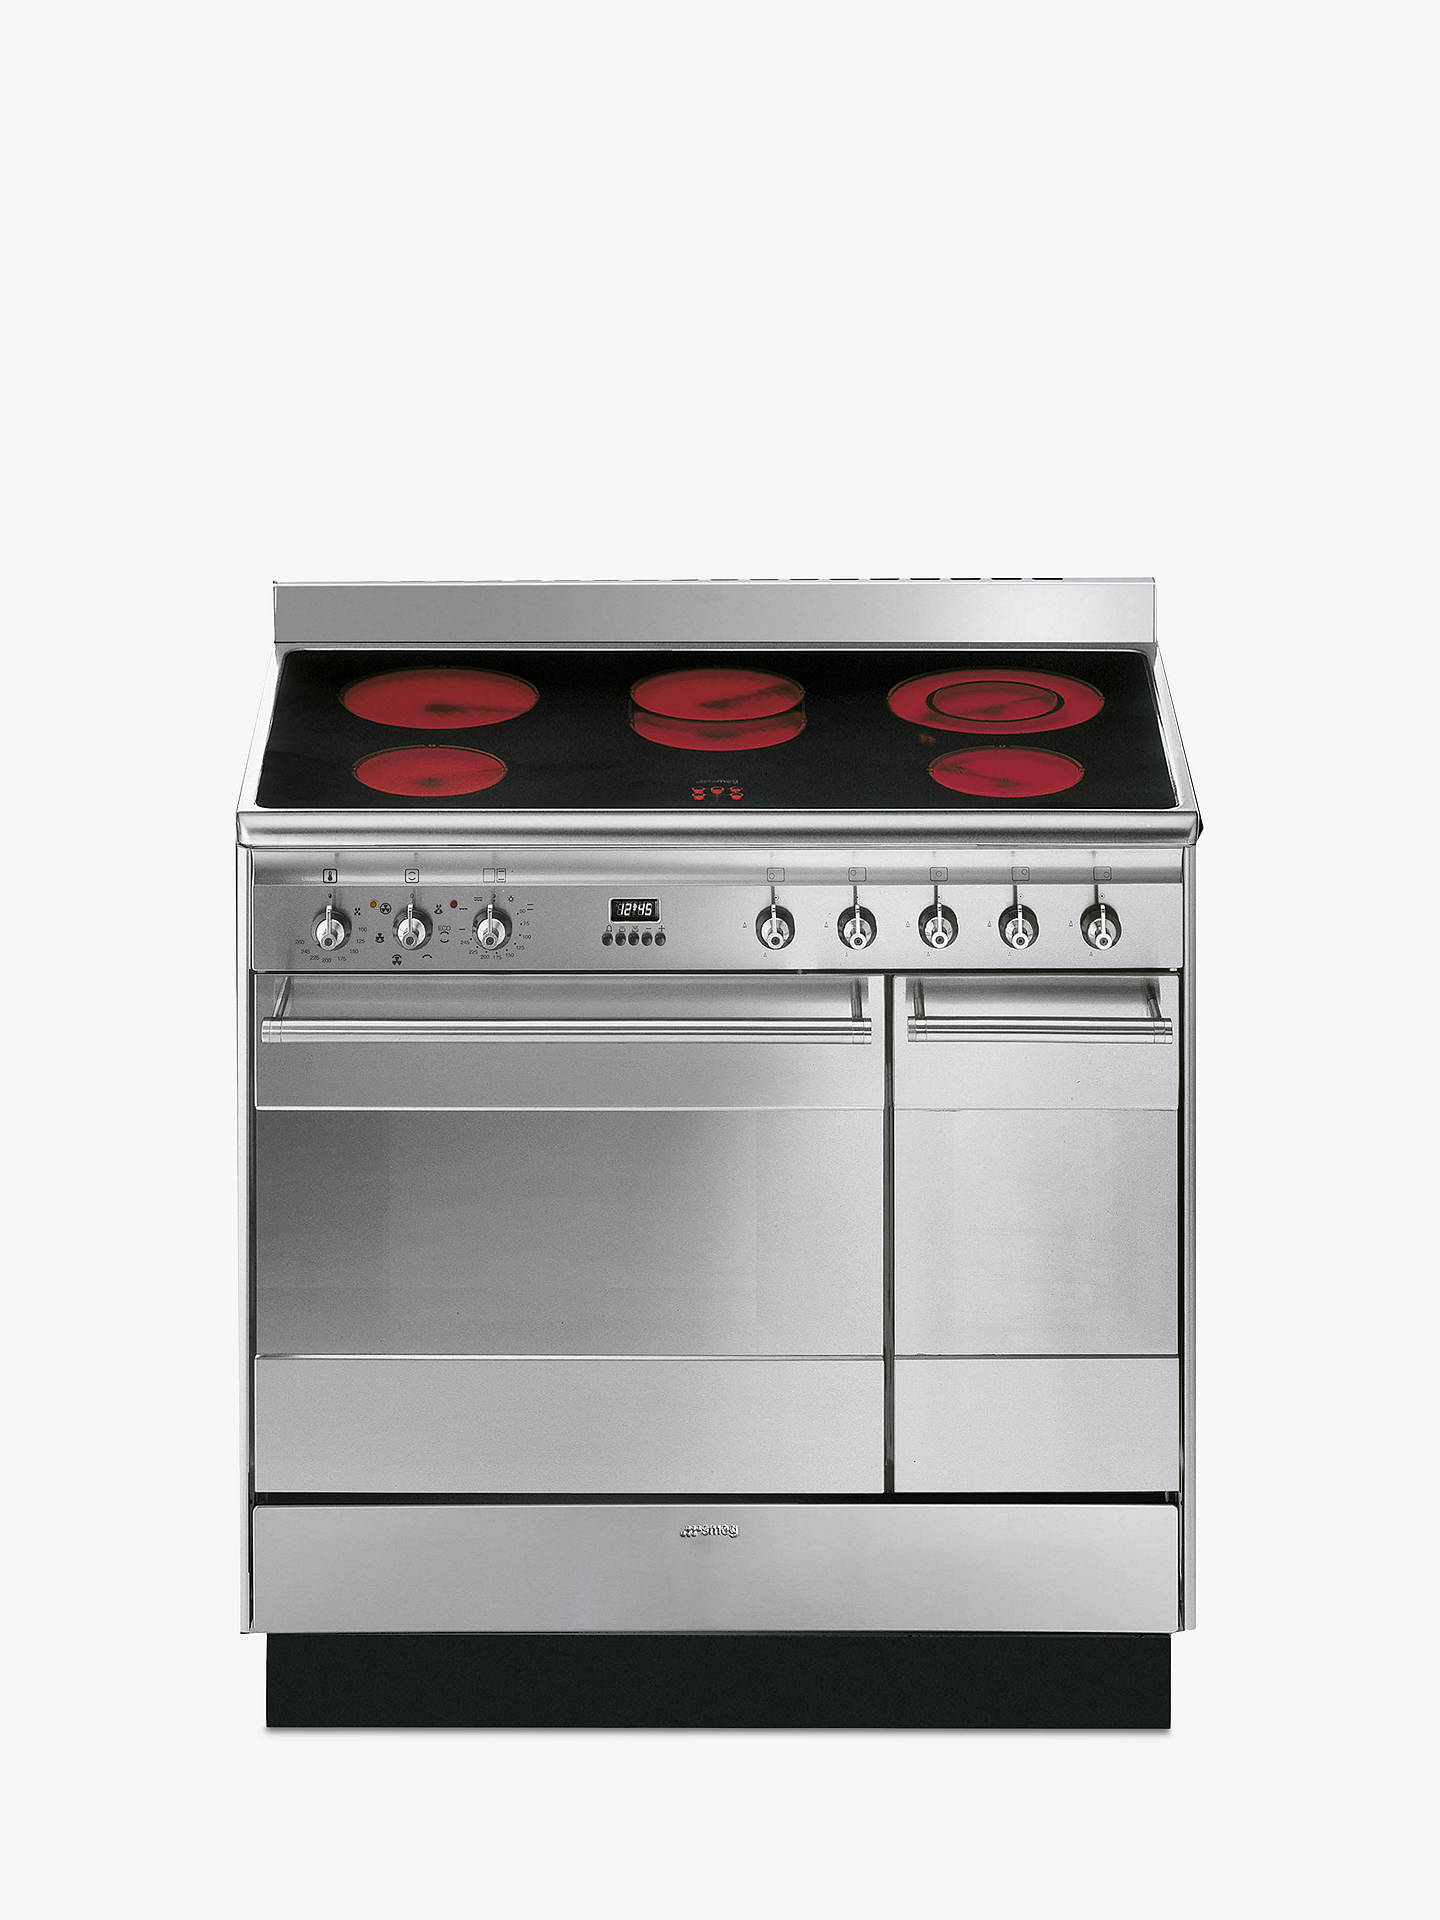 Buy Smeg SUK92CMX9 Double Range Cooker with Ceramic Hob, Stainless Steel Online at johnlewis.com